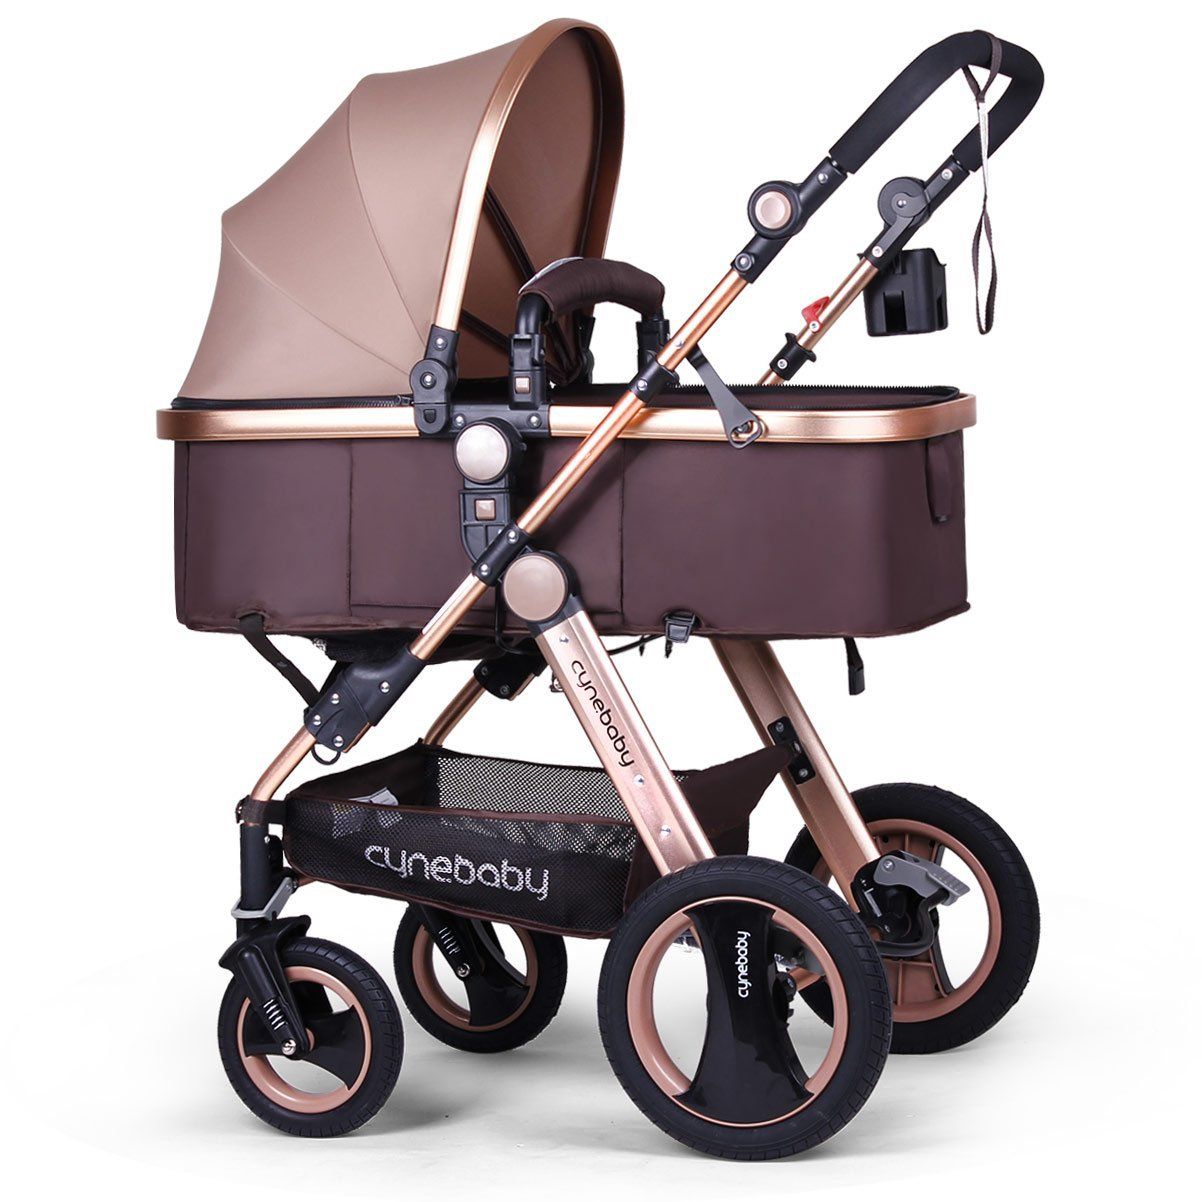 Infant Baby Stroller for Newborn and Toddler - Cynebaby Convertible Bassinet Stroller Compact Single Baby Carriage Toddler Seat Stroller Luxury Pram Stroller add Cup Holder.